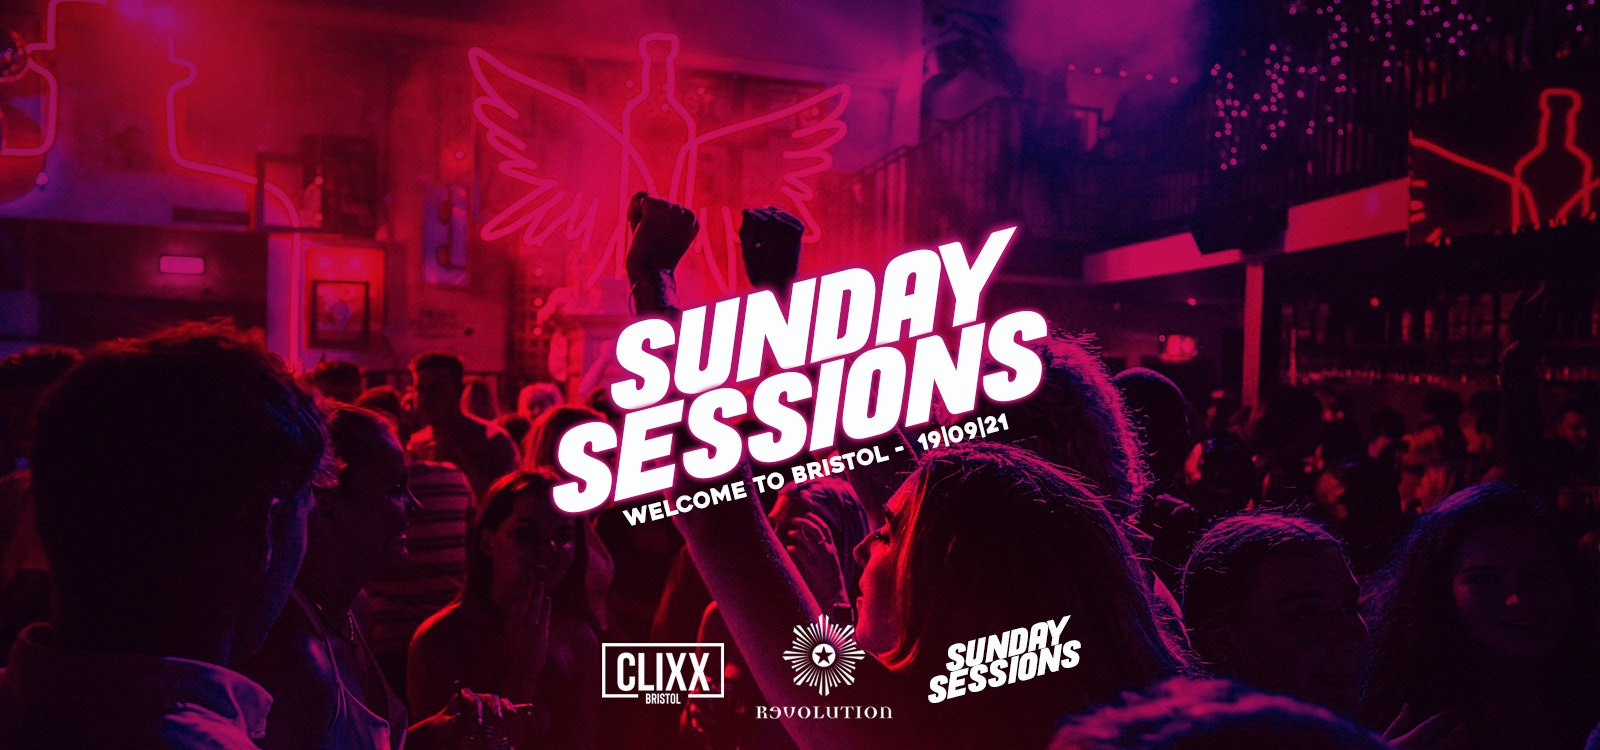 Sunday Sessions || Moving In Party! – FREE Shot with every ticket + £1.50 DRINKS